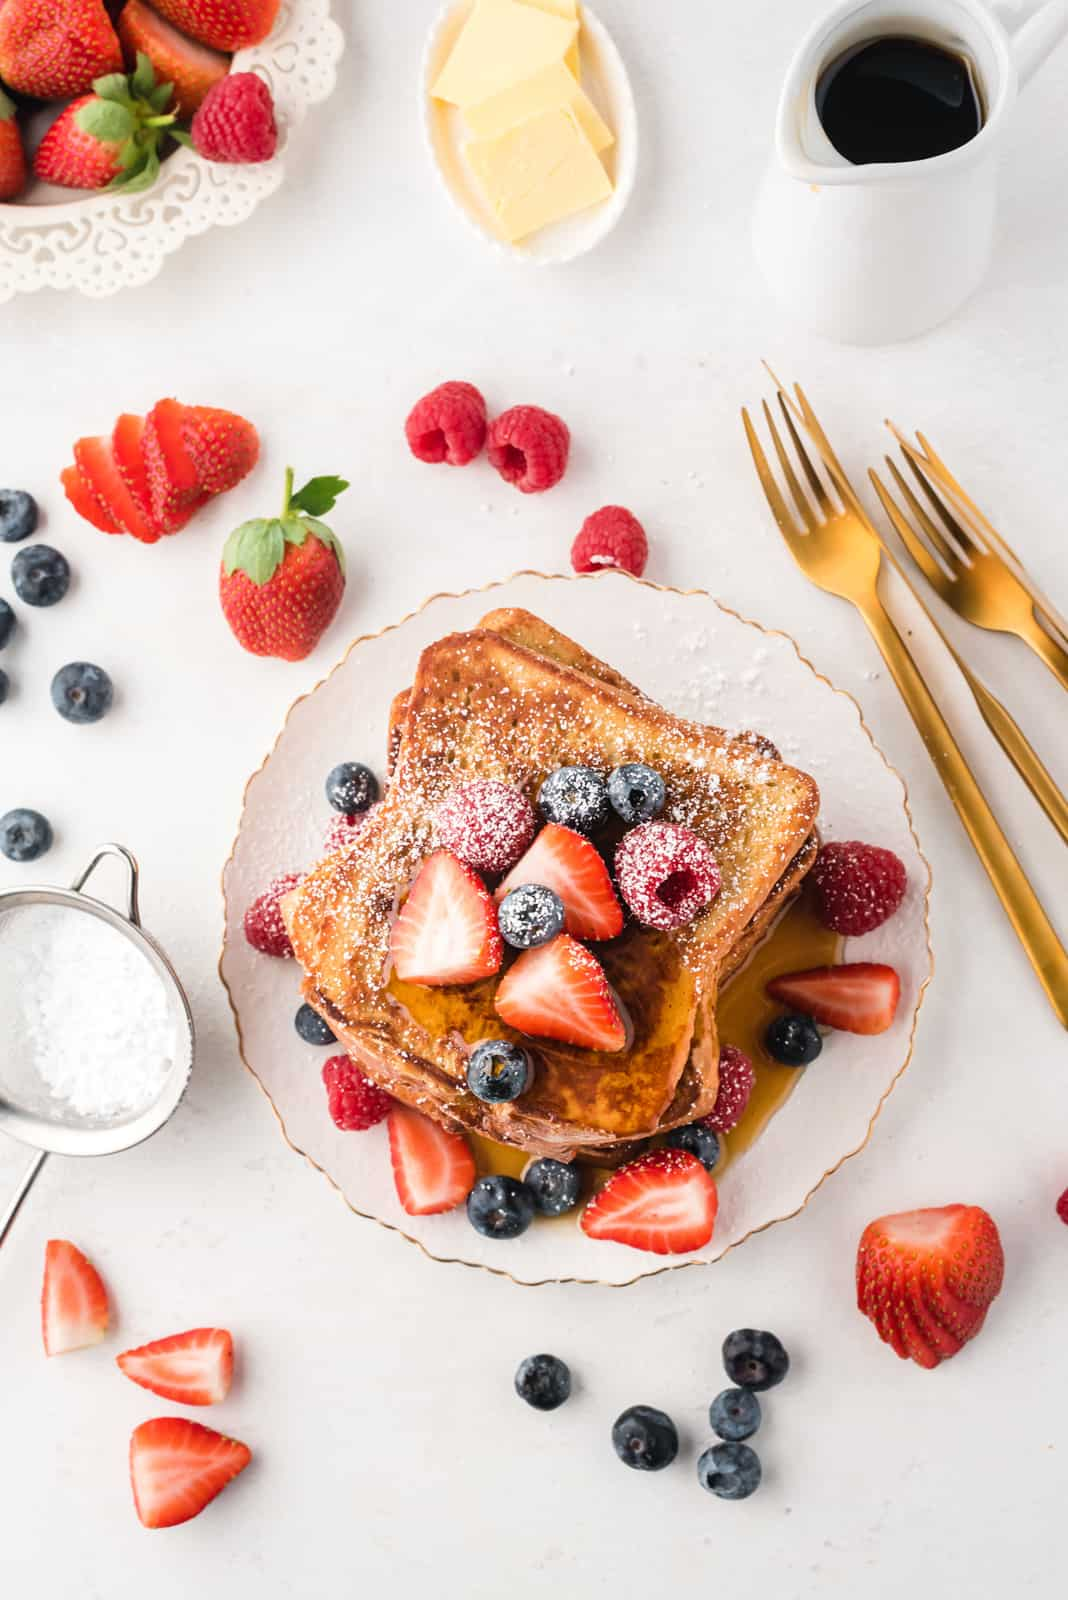 Overhead of French Toast on white plate